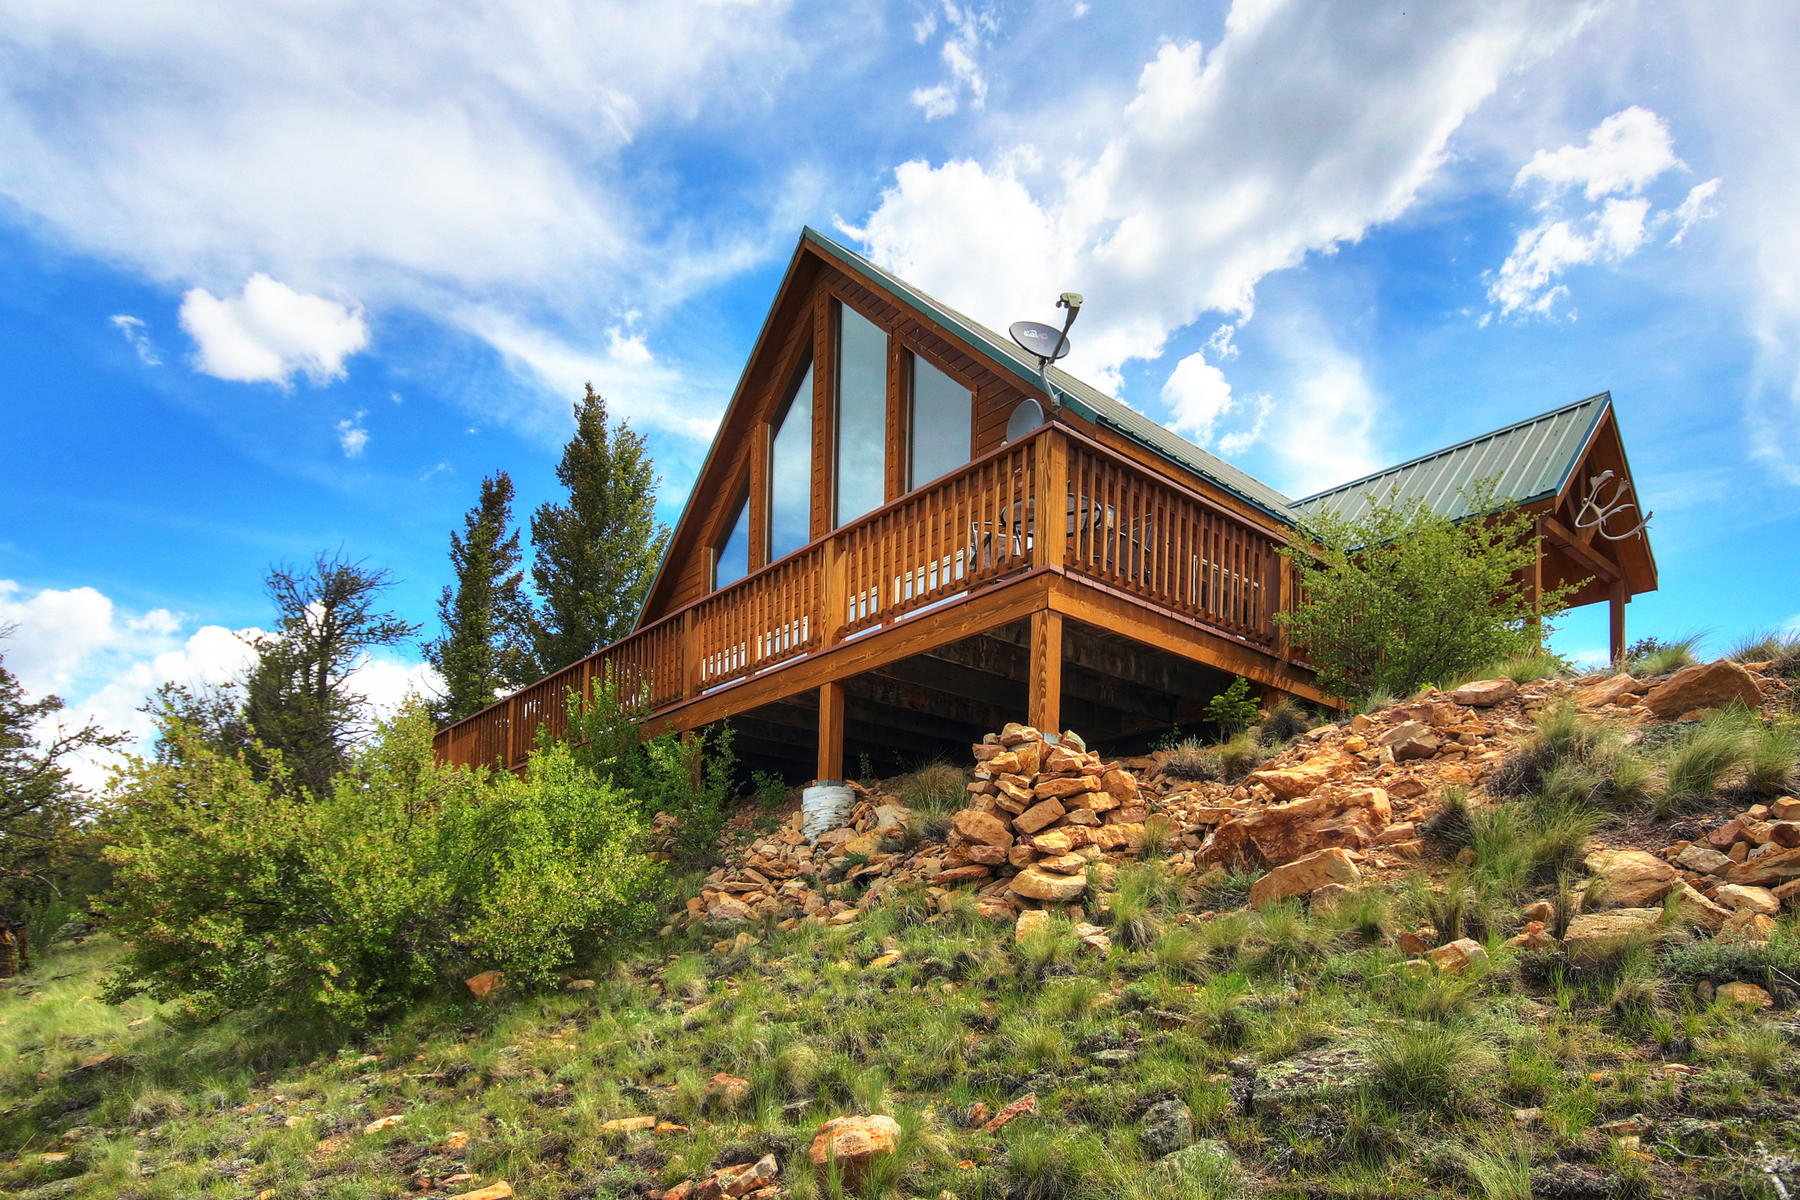 Single Family Homes for Sale at Sweeping Mountain Views 3997 Middle Fork Vista Fairplay, Colorado 80440 United States